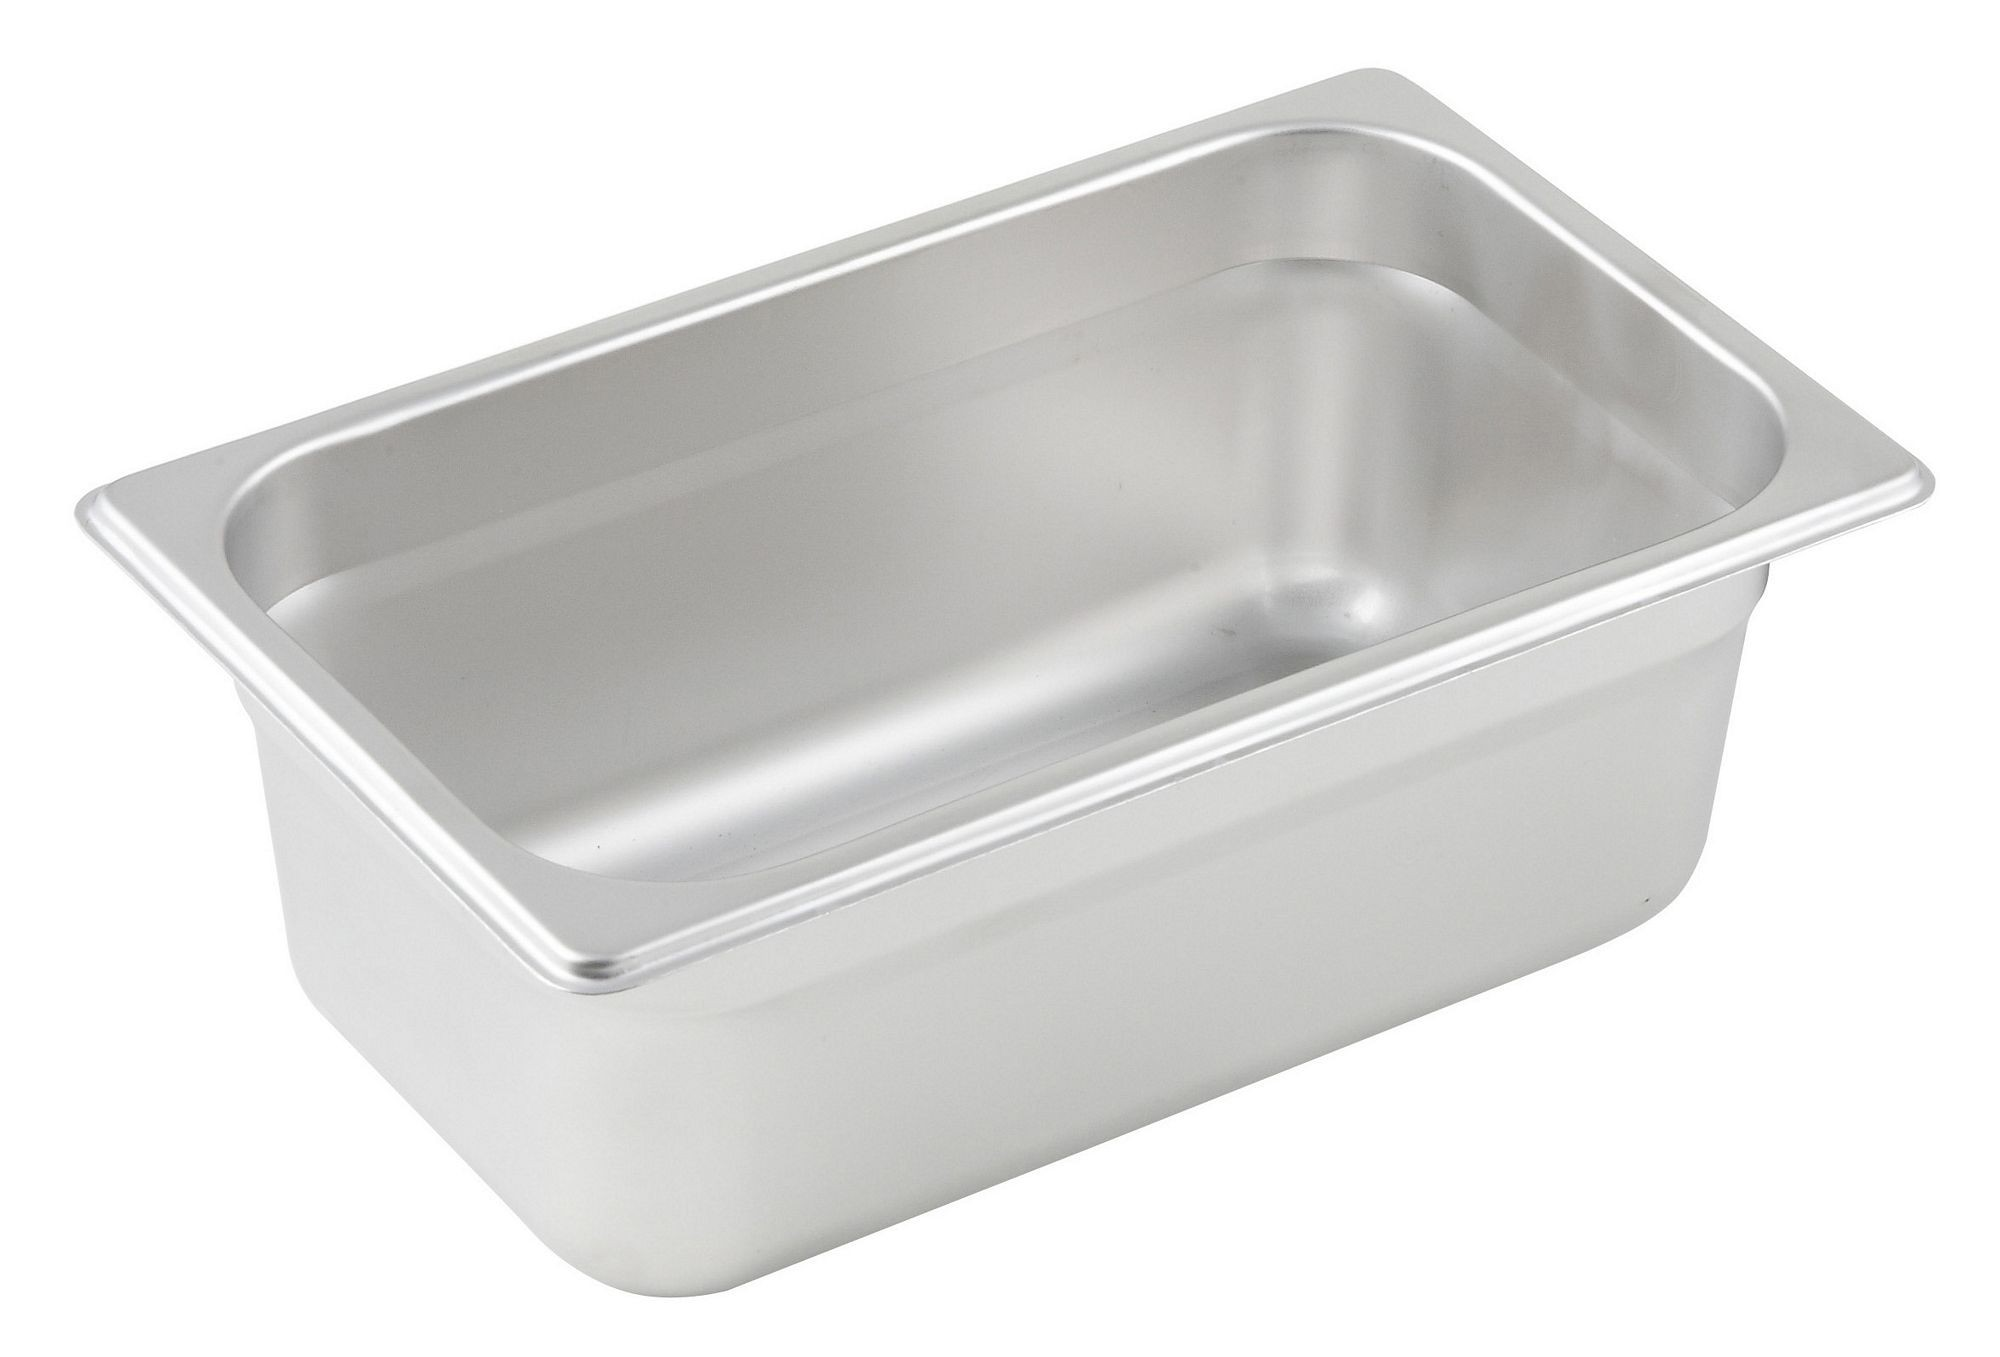 "Winco SPJM-404 1/4 Size Anti-Jam 24 Gauge Steam Table Pan 4"" Deep"